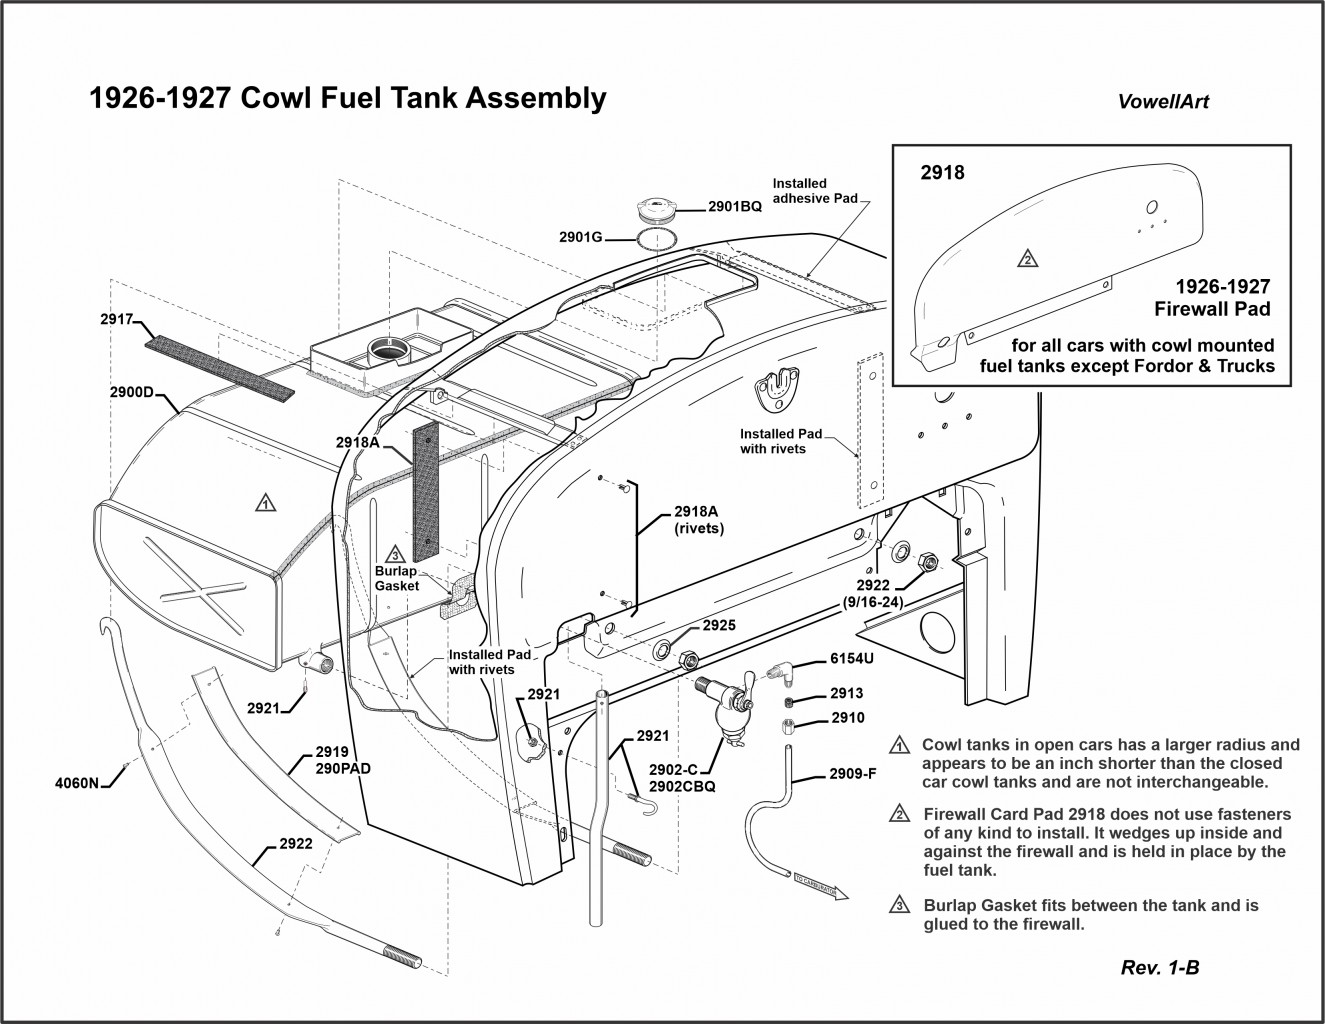 1926-1927 Cowl Fuel Tank Assembly